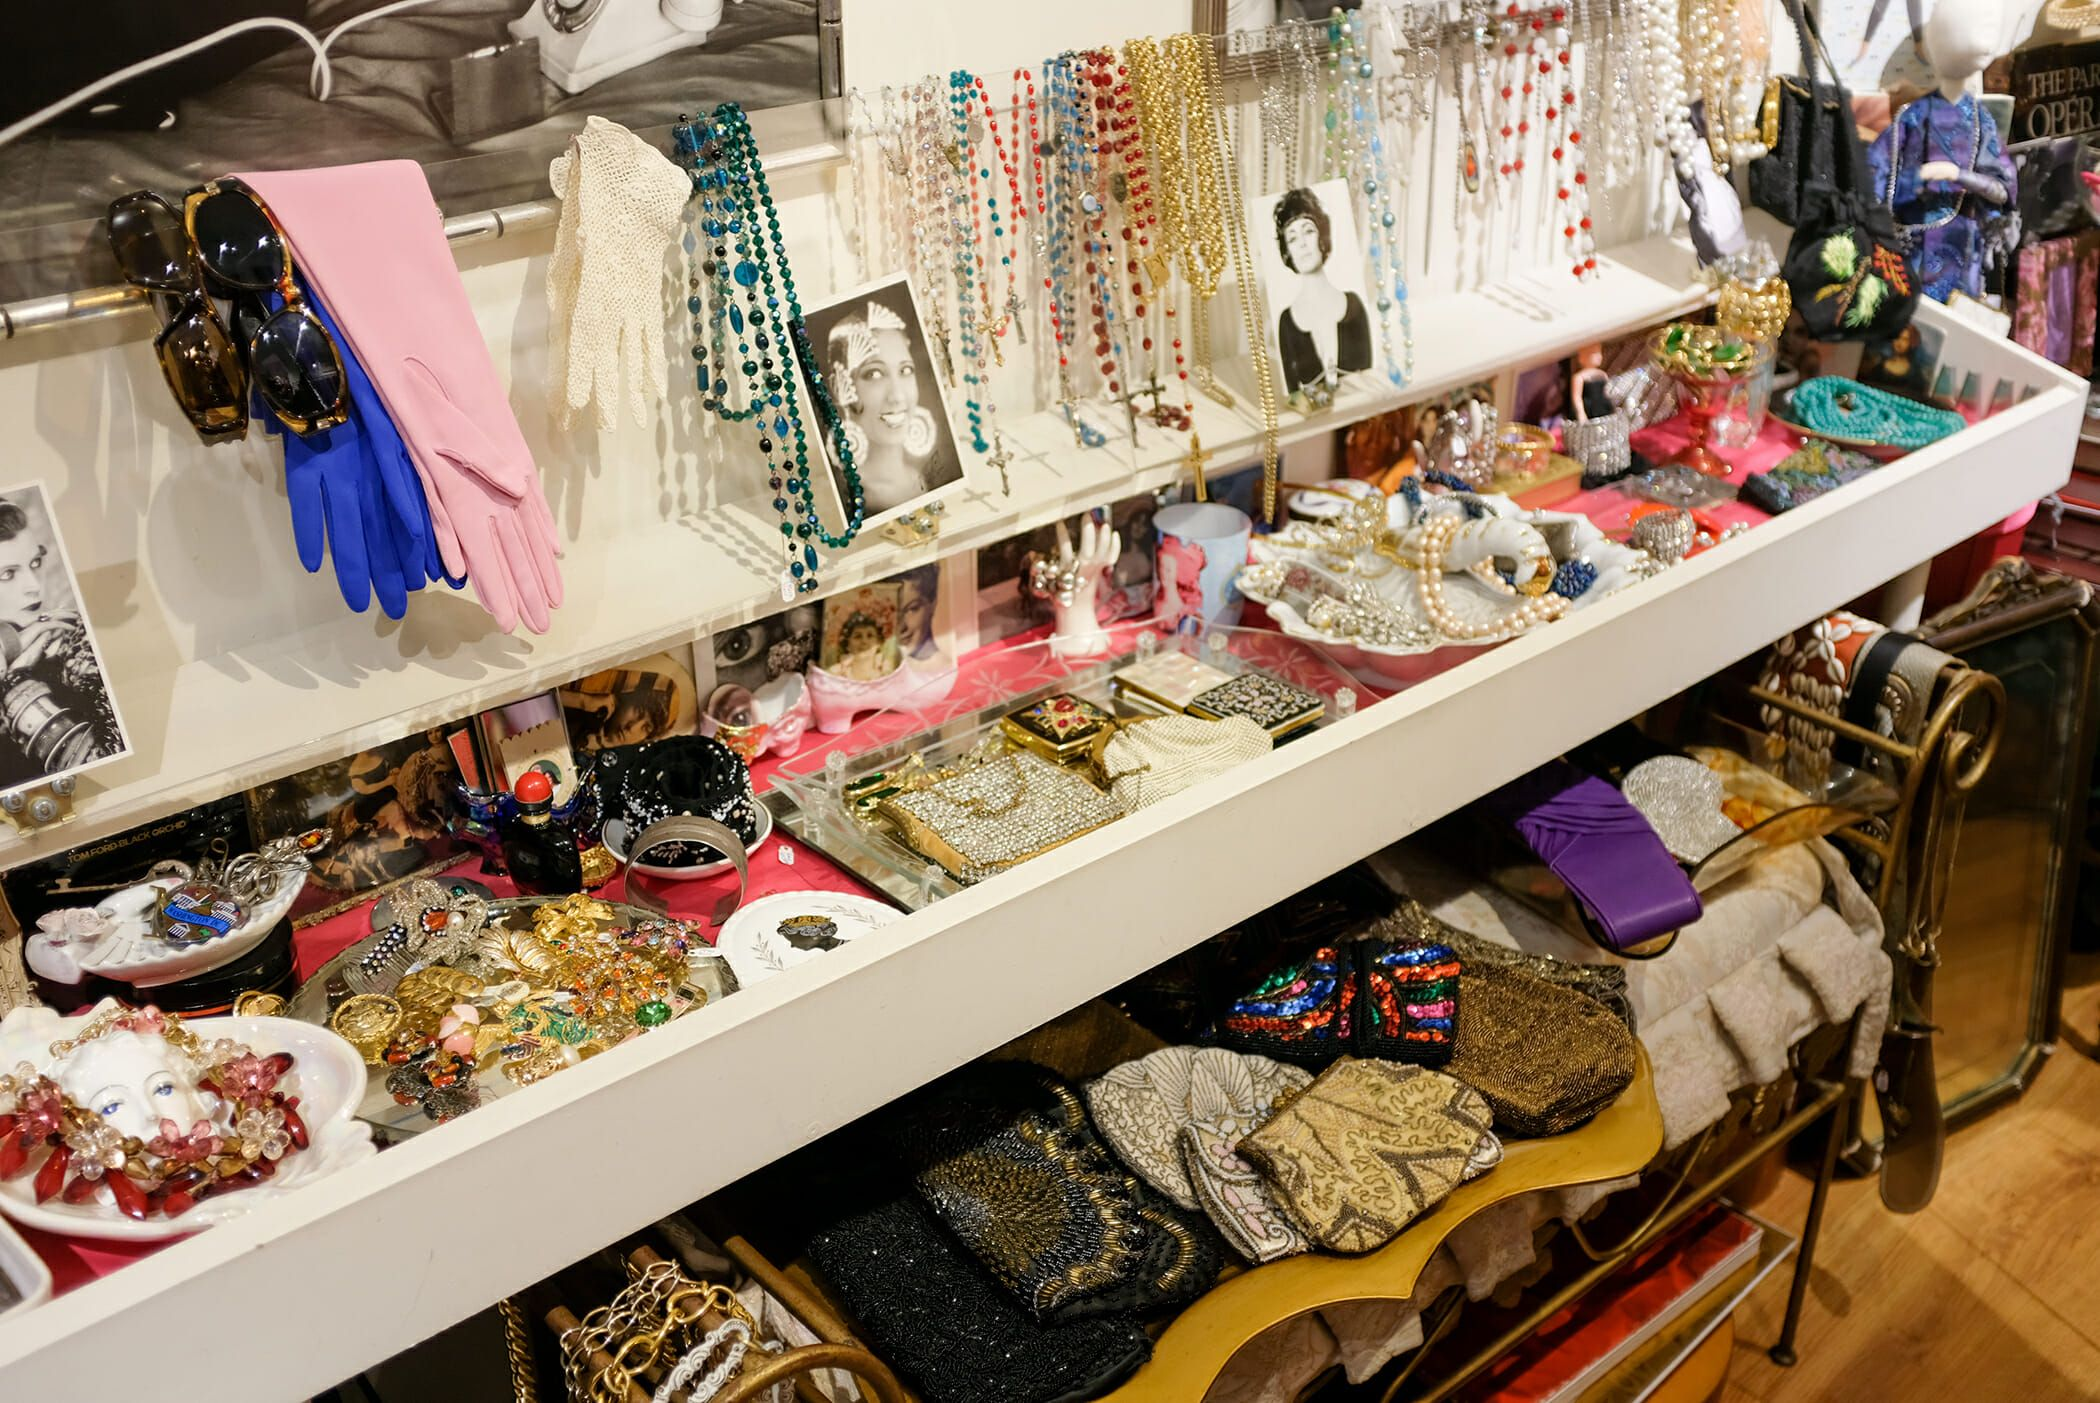 baadfb8bab A Guide to the Best Vintage and Thrift Stores in New York | Vintage ...